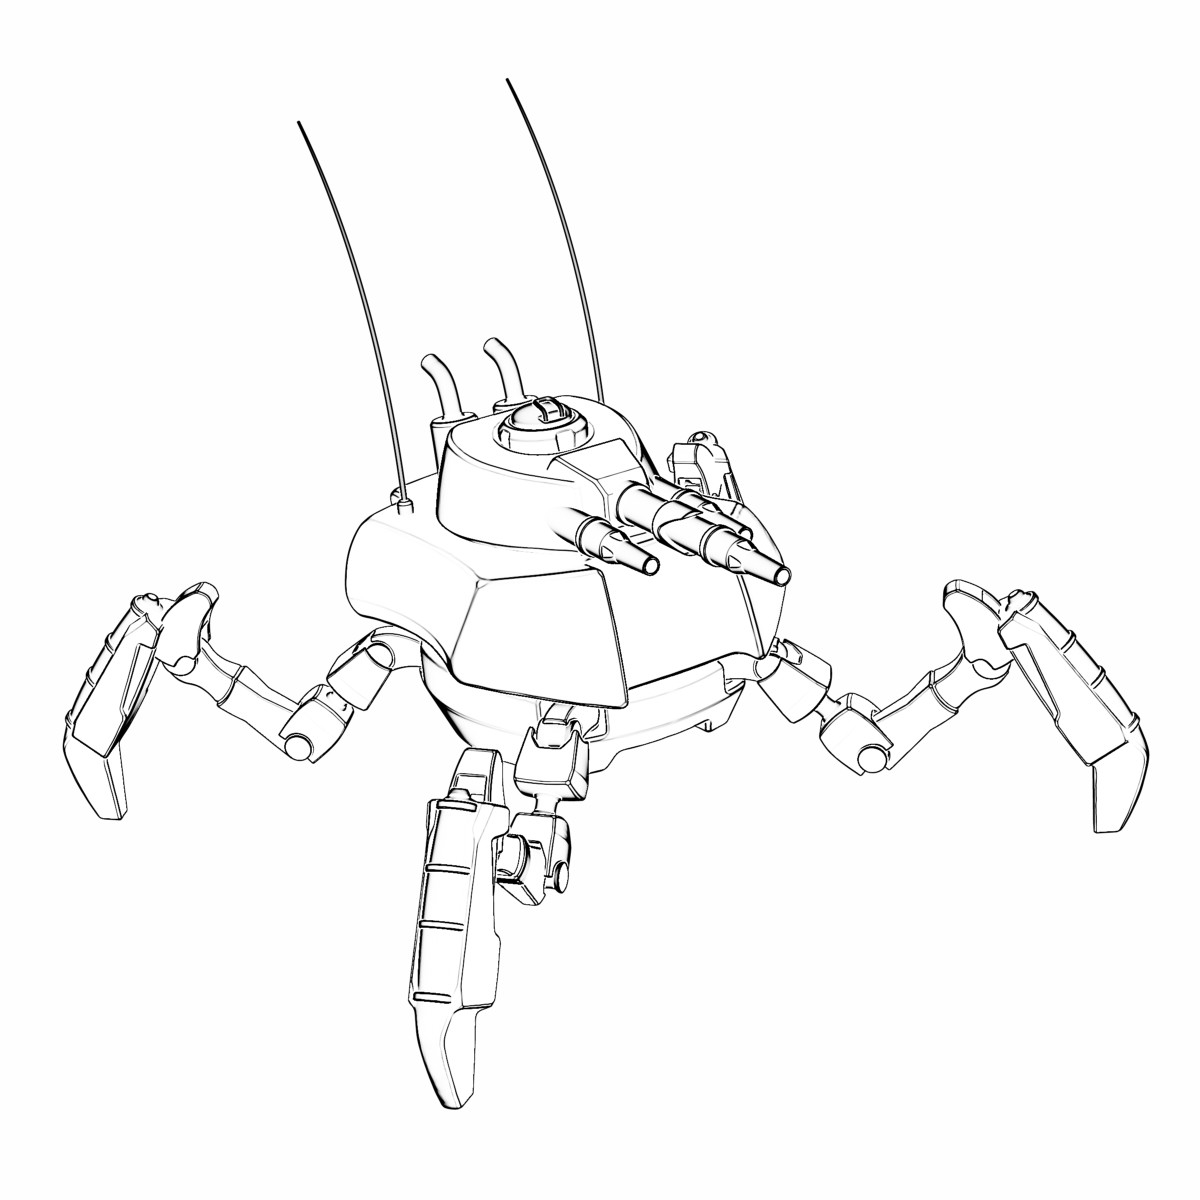 Military Spider-bot Class III (8000kg)